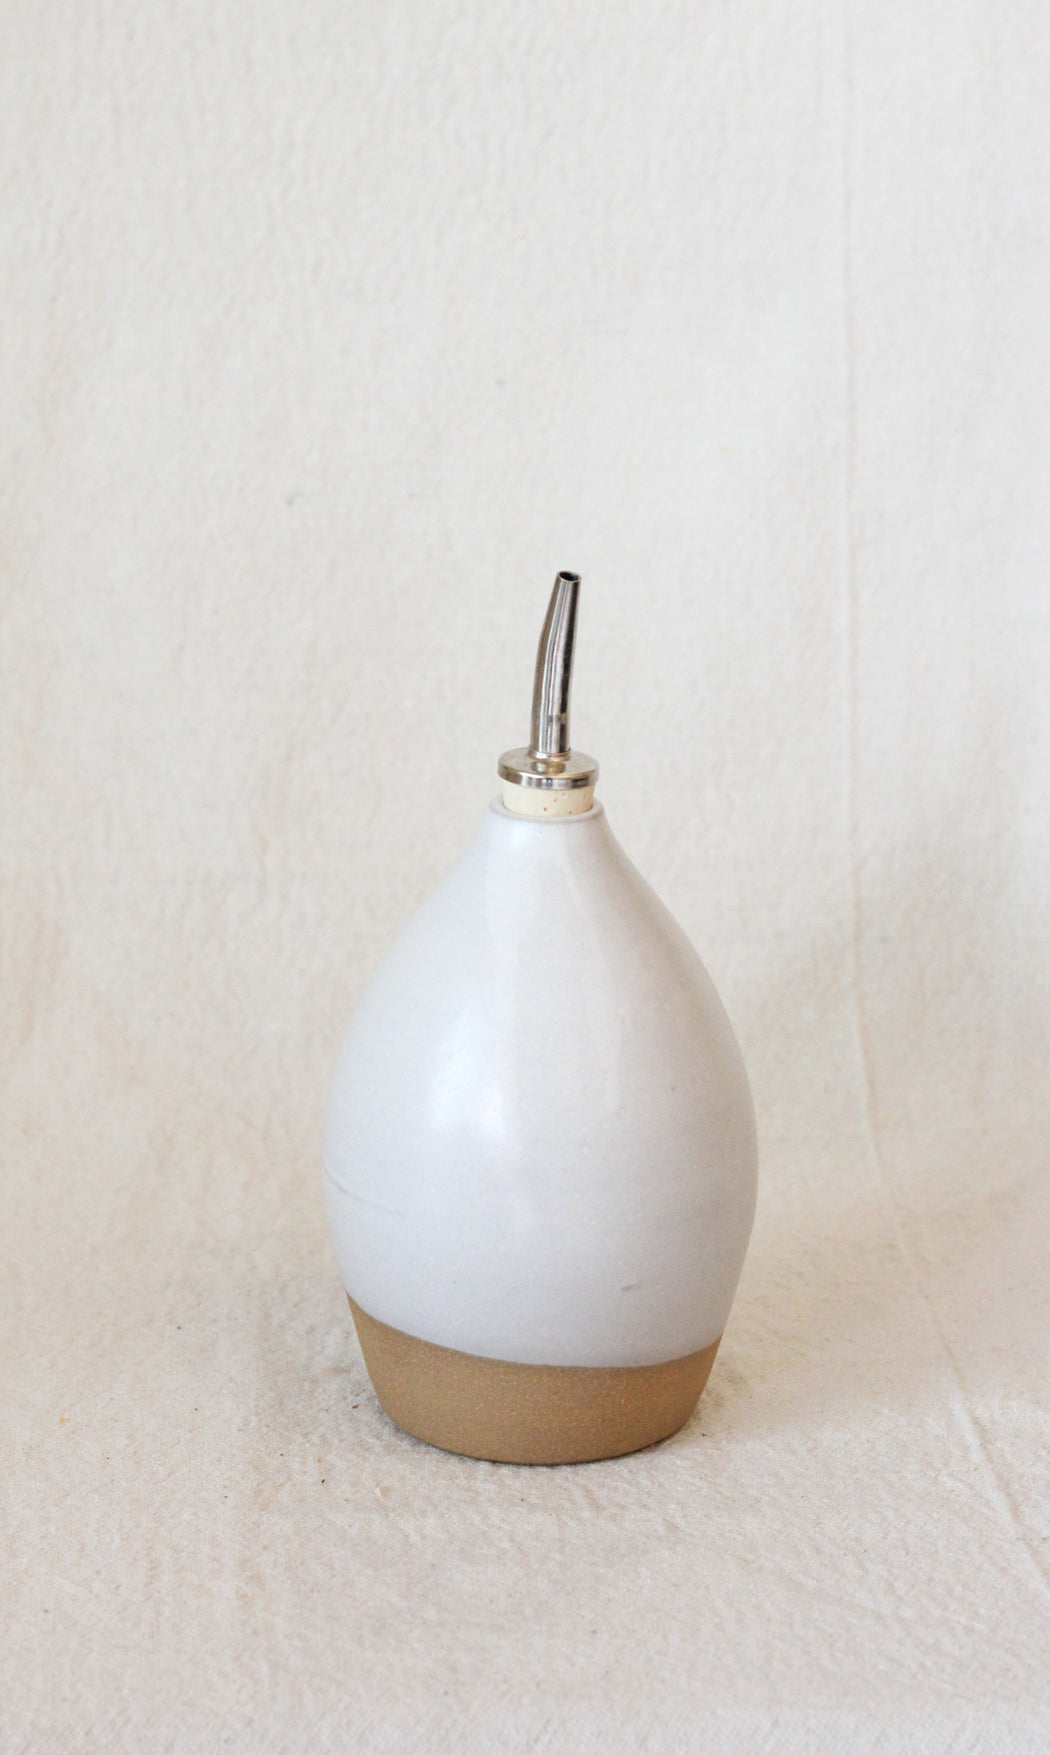 14oz Ceramic Oil Bottle - Matte White